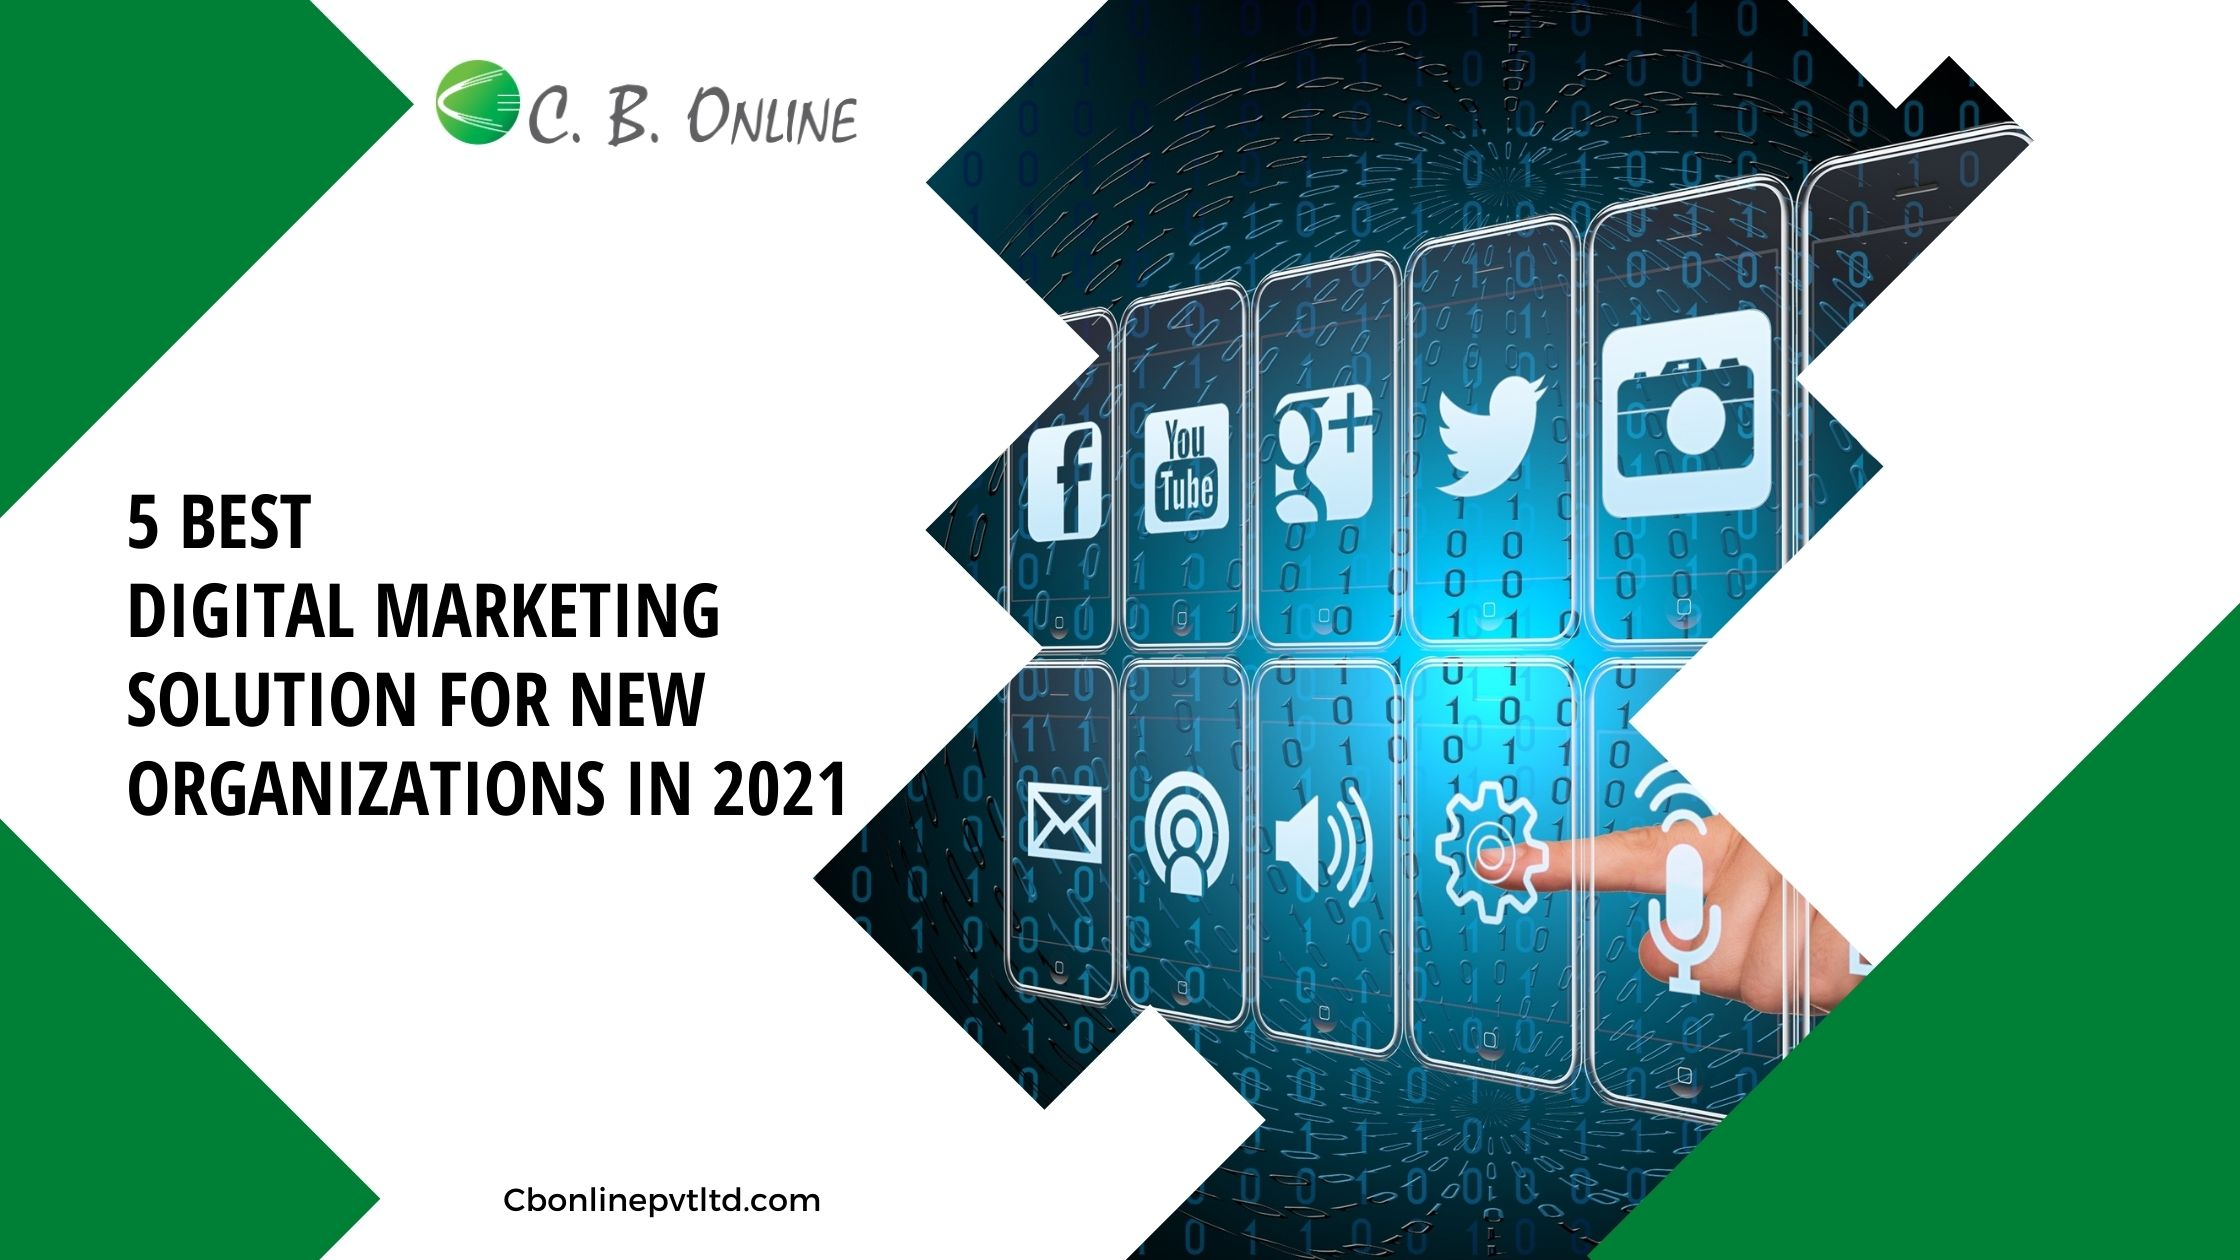 5 Best Digital Marketing Solution for New Organizations in 2021